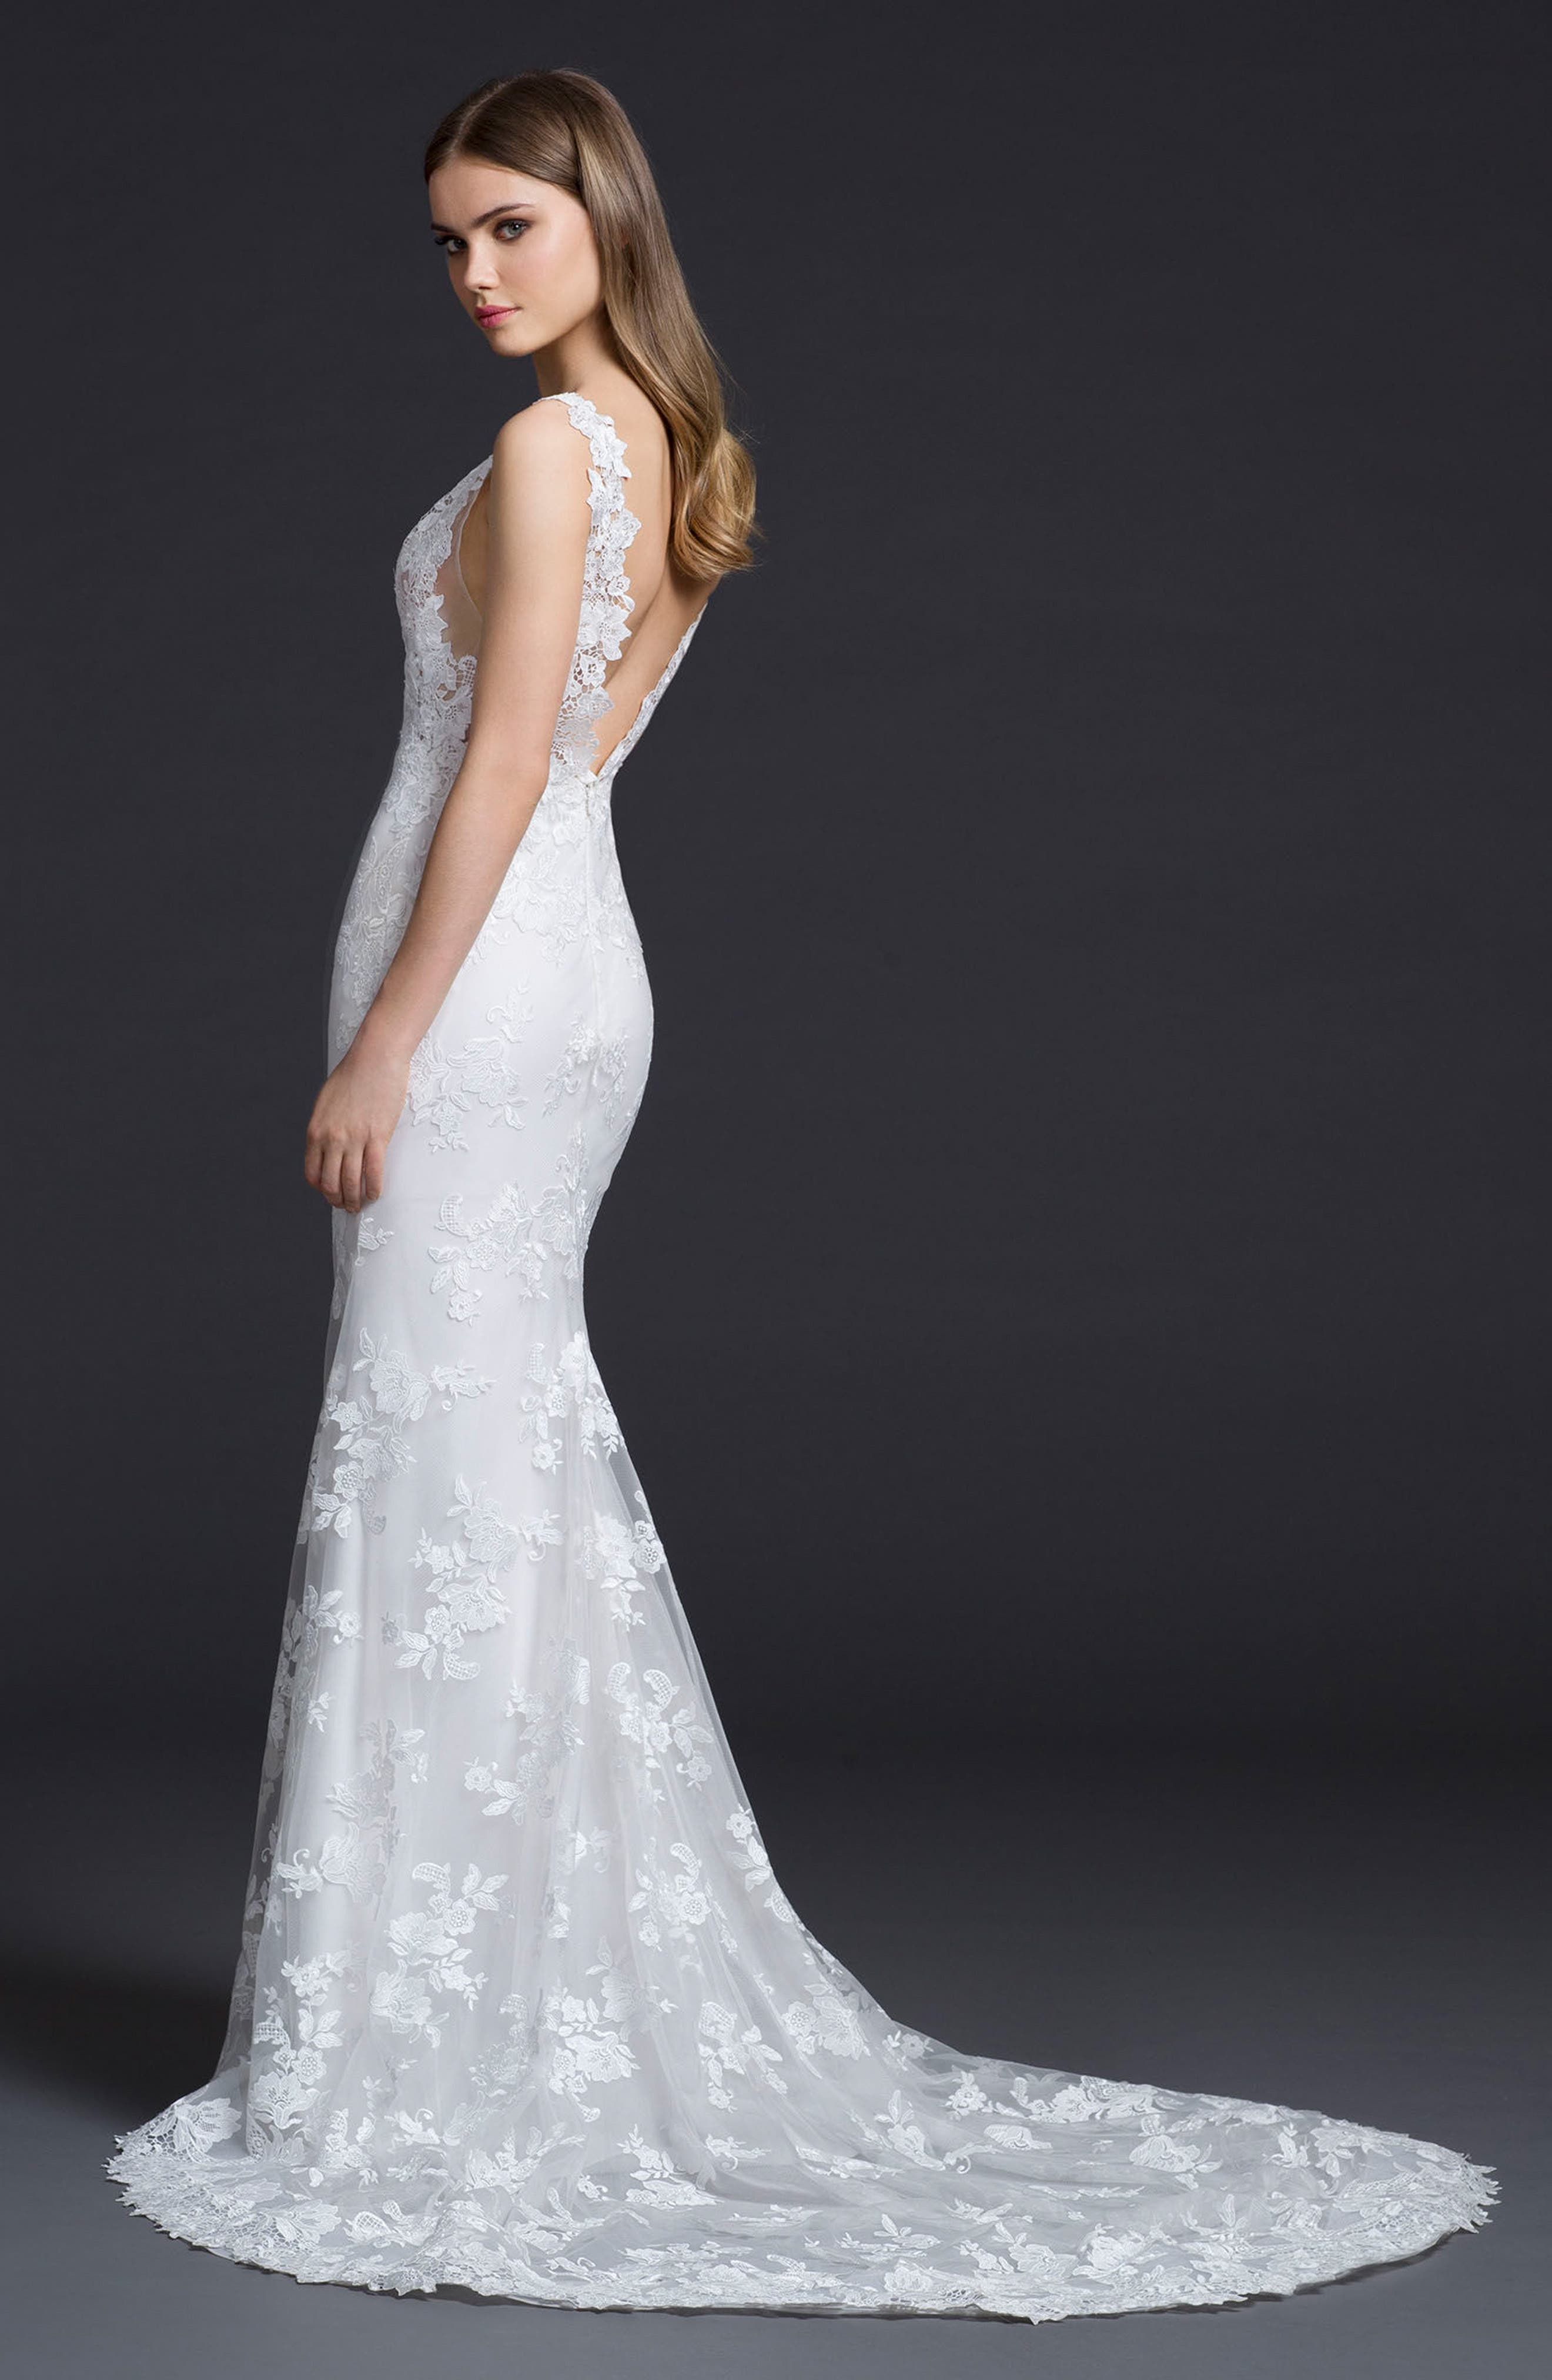 Venice Lace Sheath Gown,                             Alternate thumbnail 2, color,                             Ivory